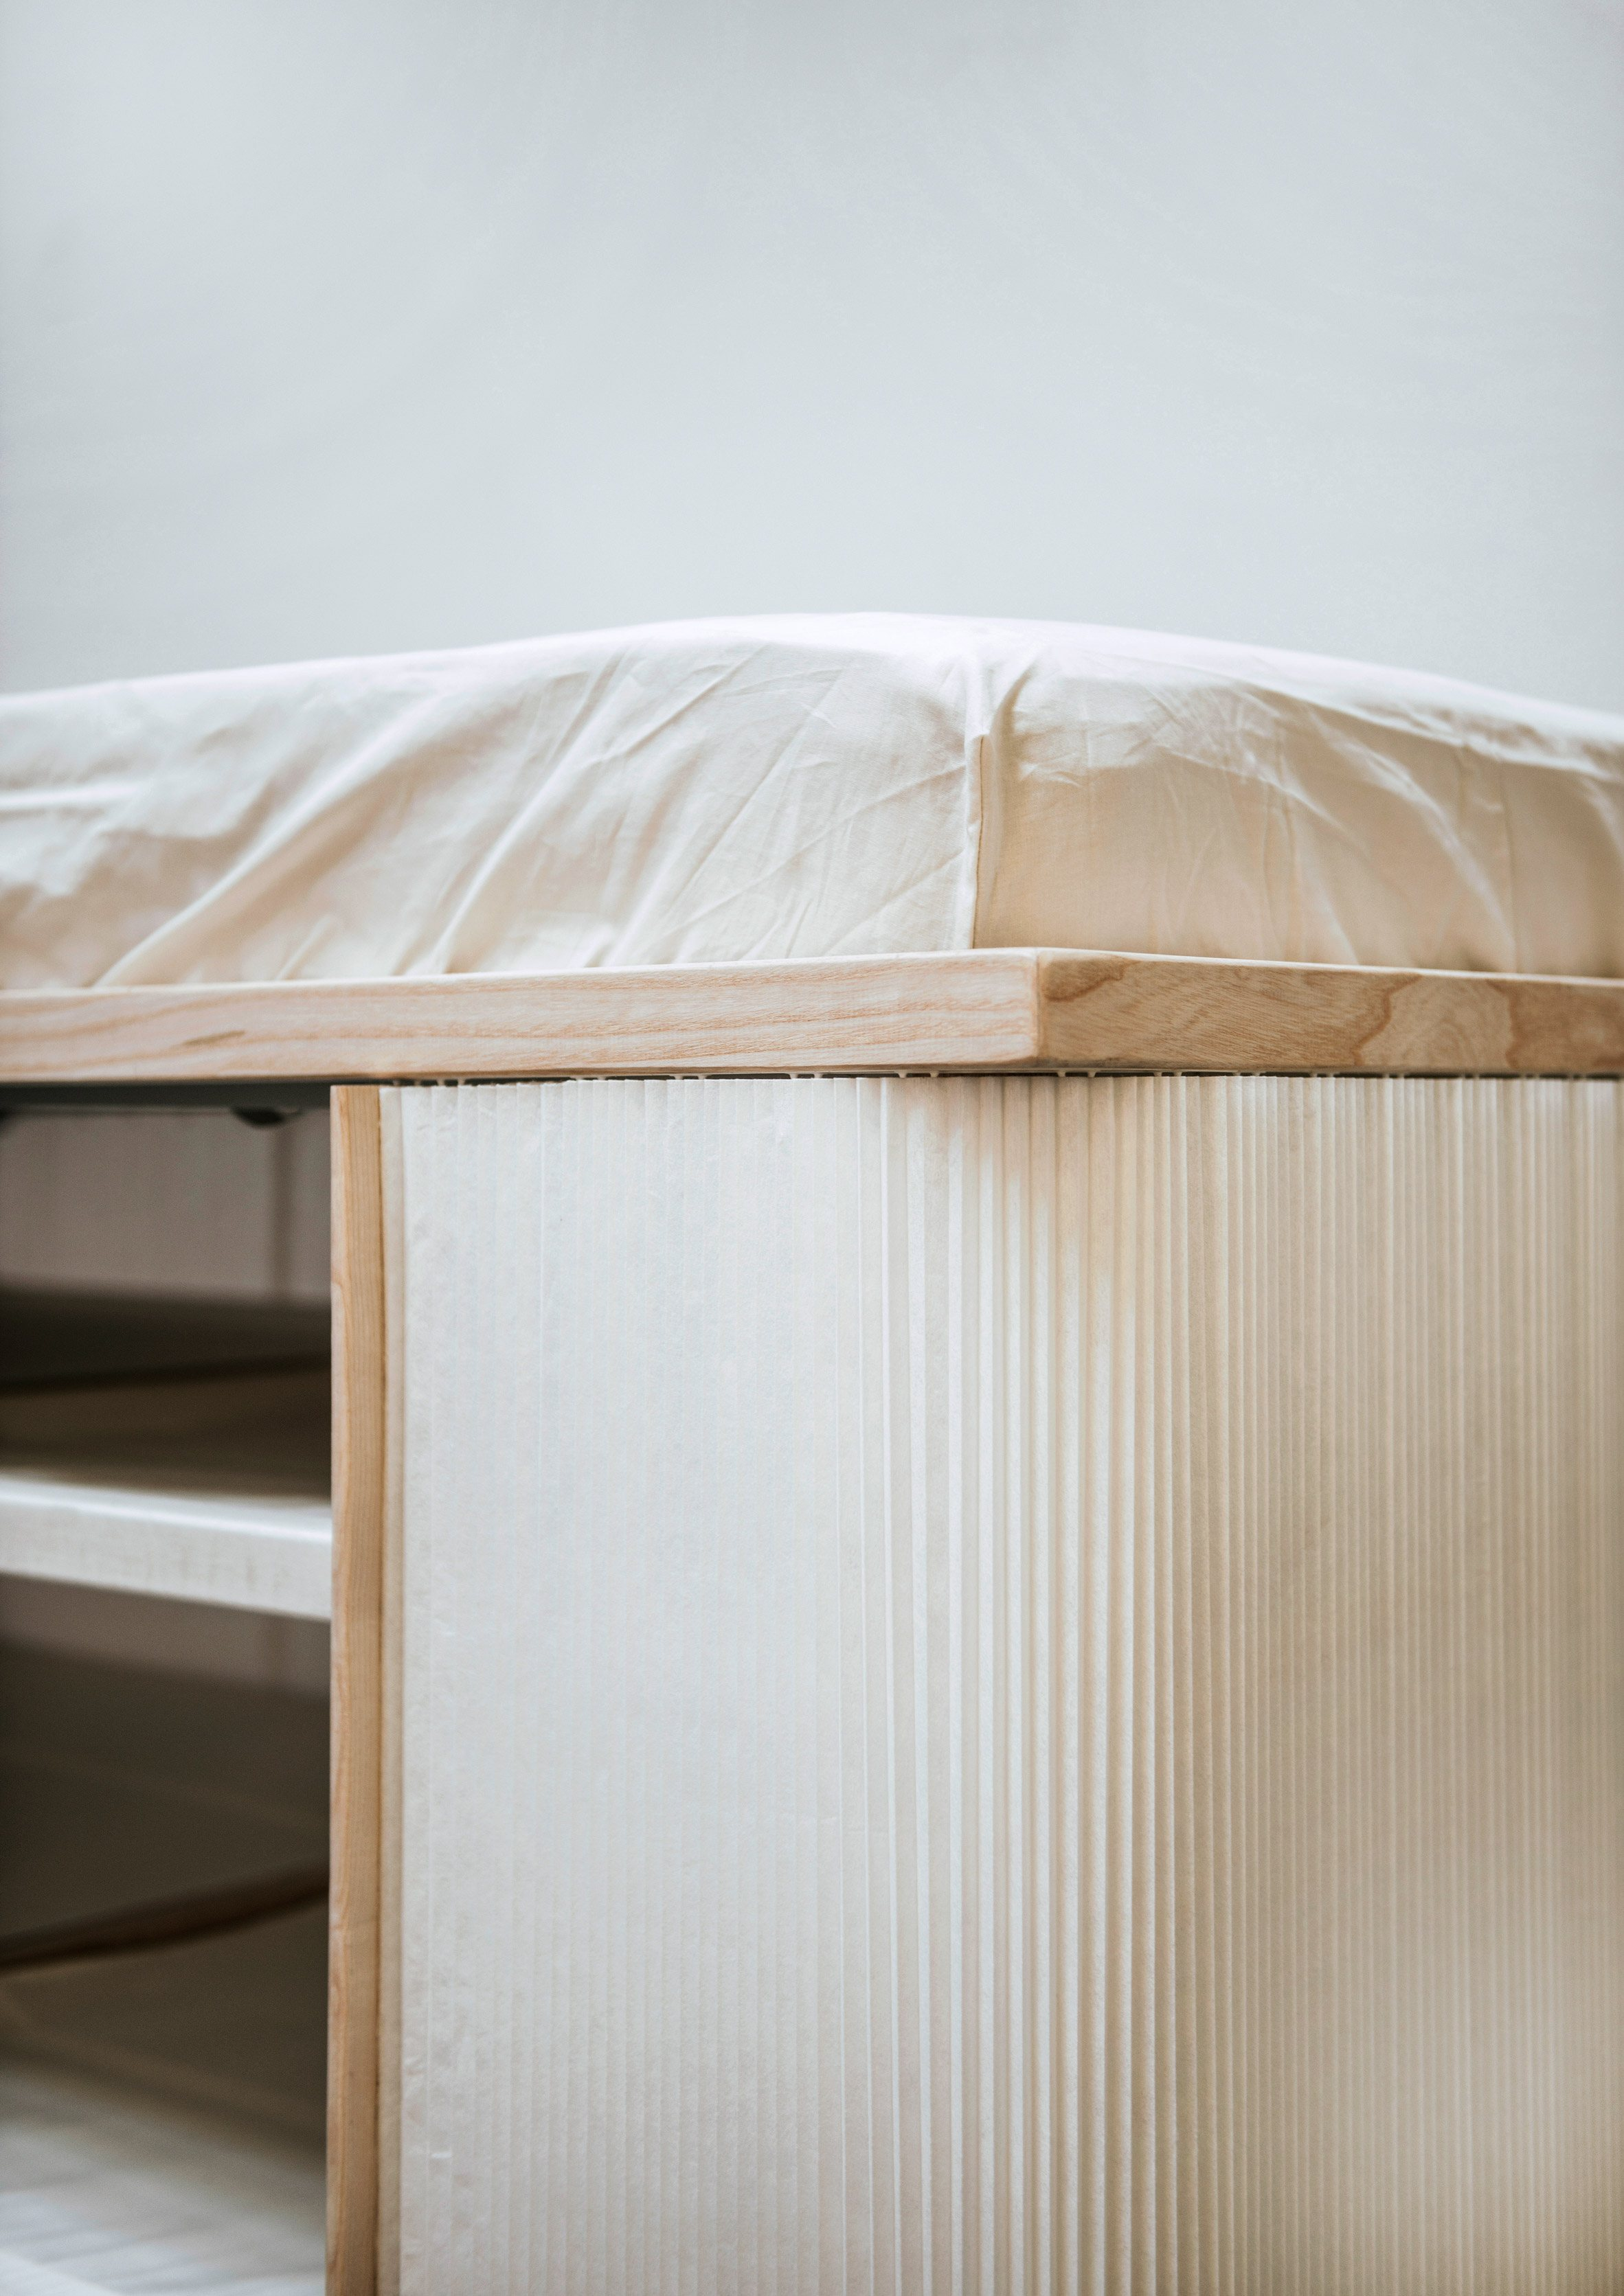 IGNANT-Design-Yesul-Jang-Tiny-Home-Bed-3